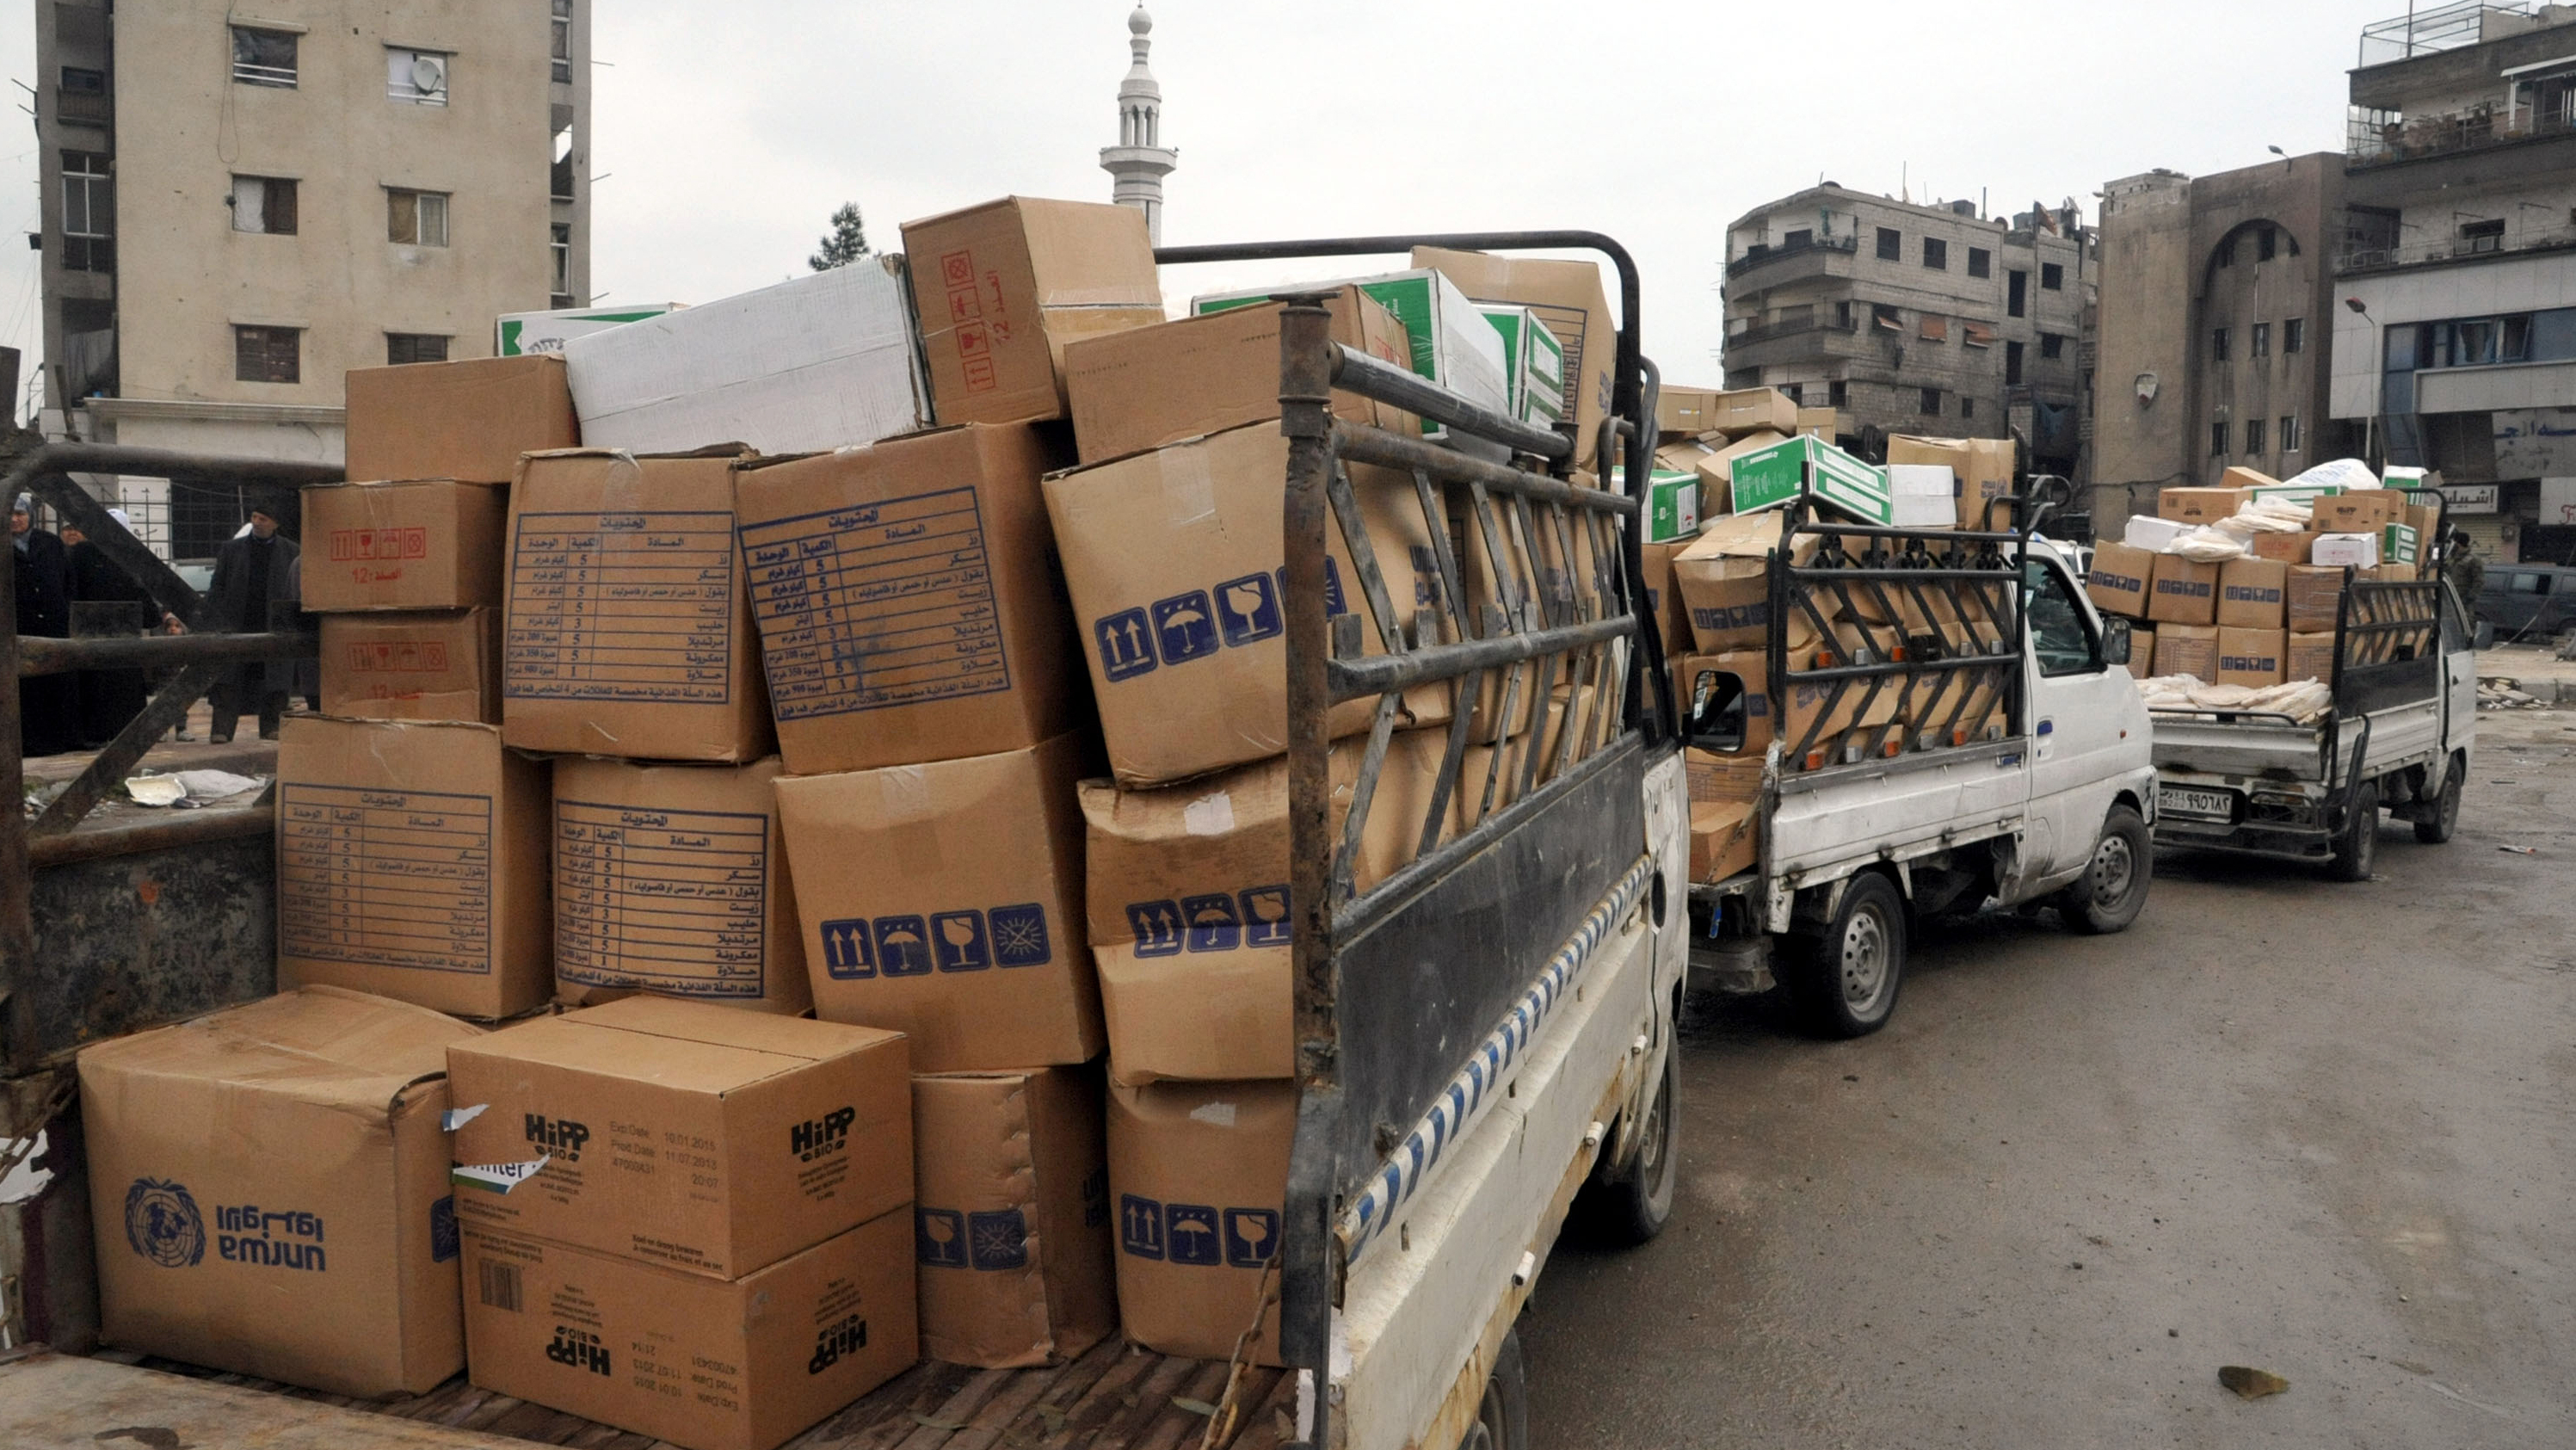 Drought Could Complicate Already Difficult Food Crisis In Syria